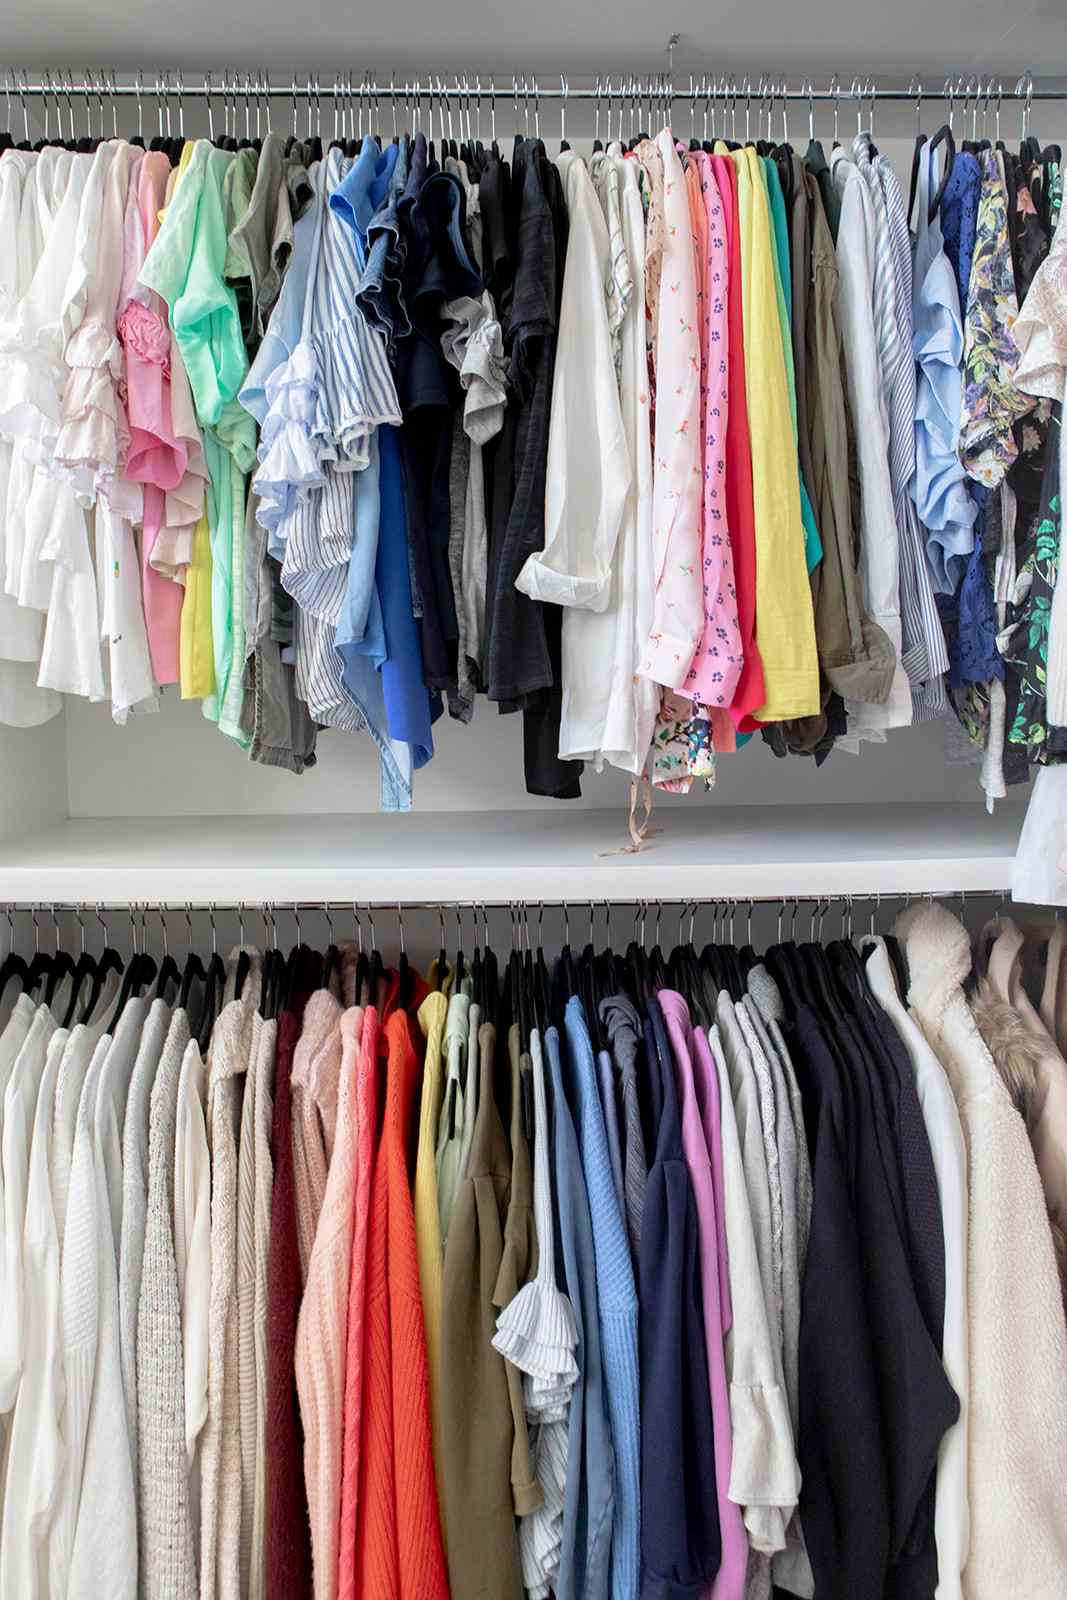 Hanging clothes racks with matching hangers